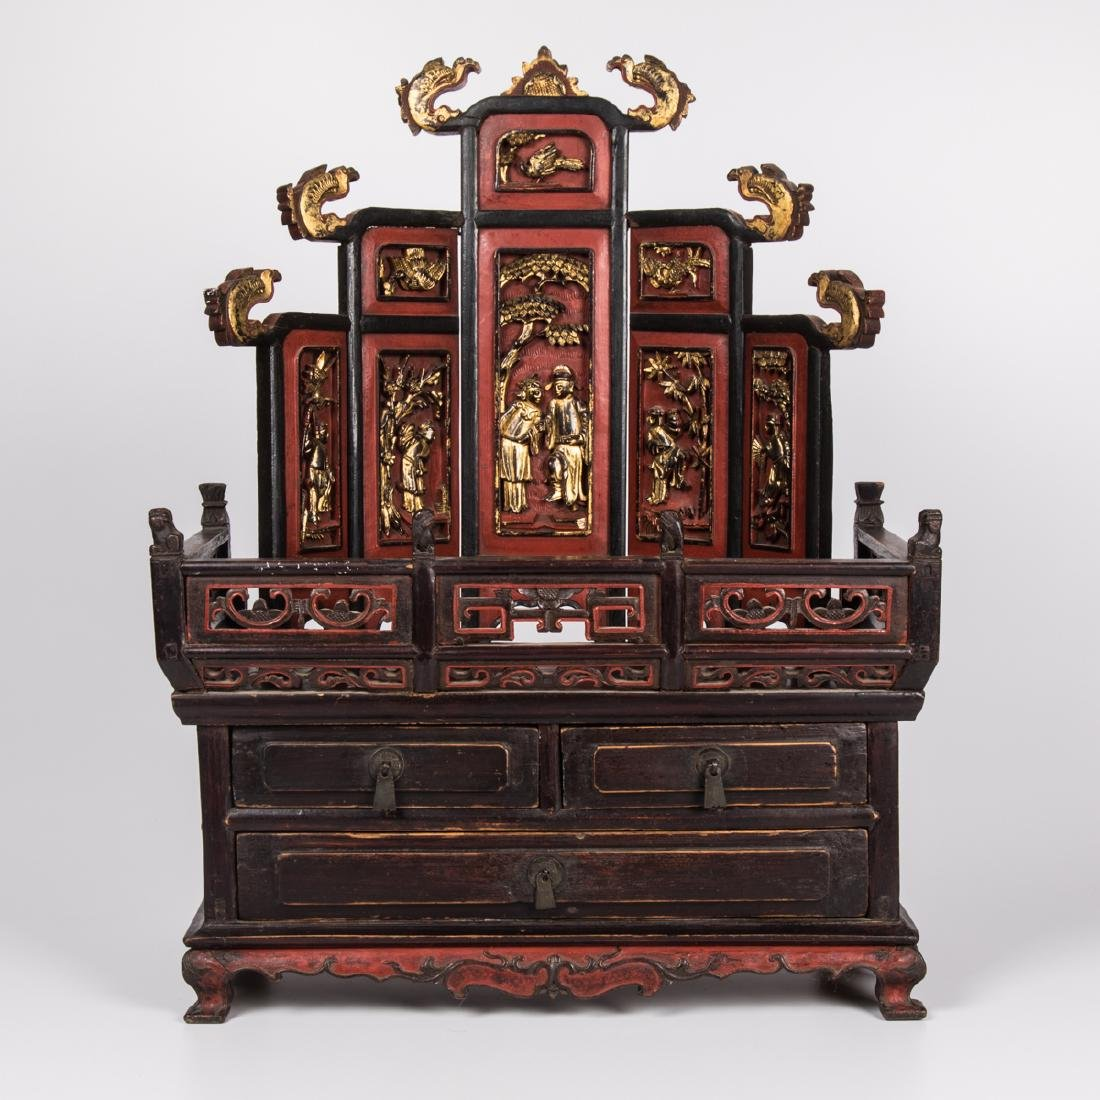 A Chinese Gilt Lacquered Altar Stand with Drawers, 20th